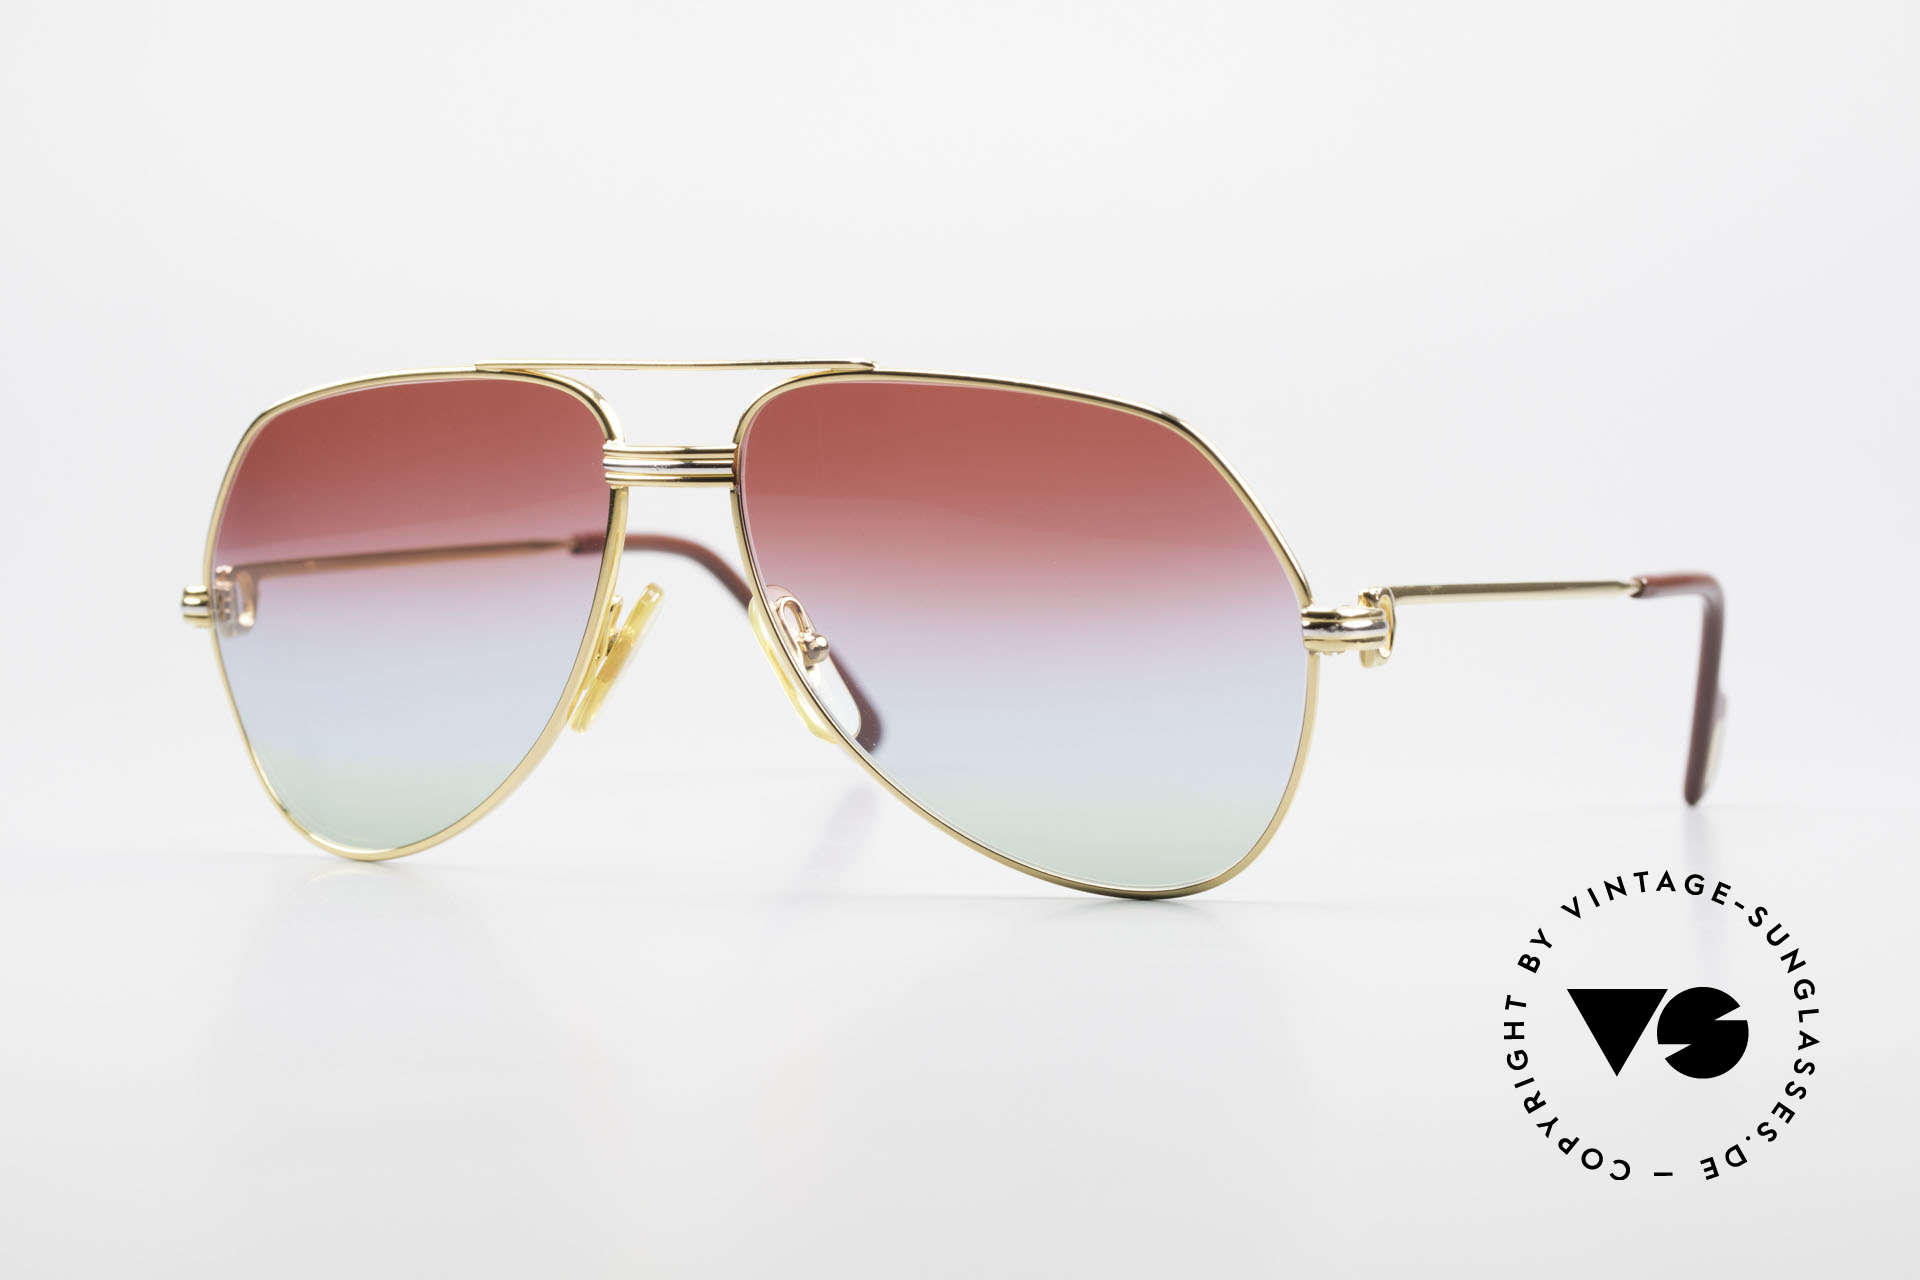 Cartier Vendome LC - S 1980's Sunglasses Tricolored, vintage Cartier Vendome glasses; famous aviator style!, Made for Men and Women